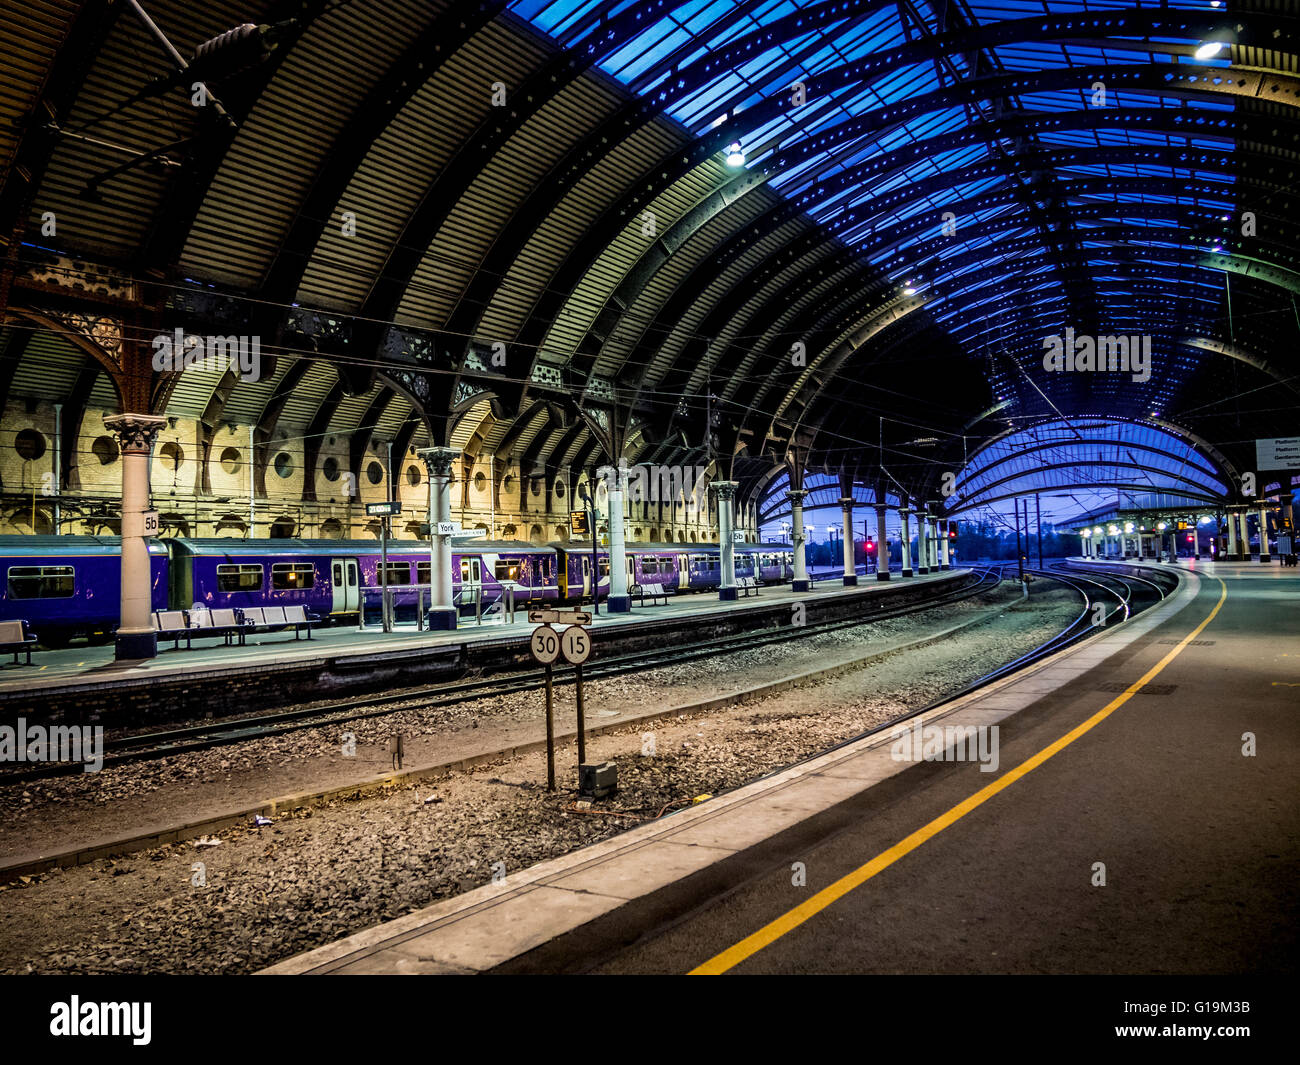 York railway station platform and roof structure at dusk - Stock Image